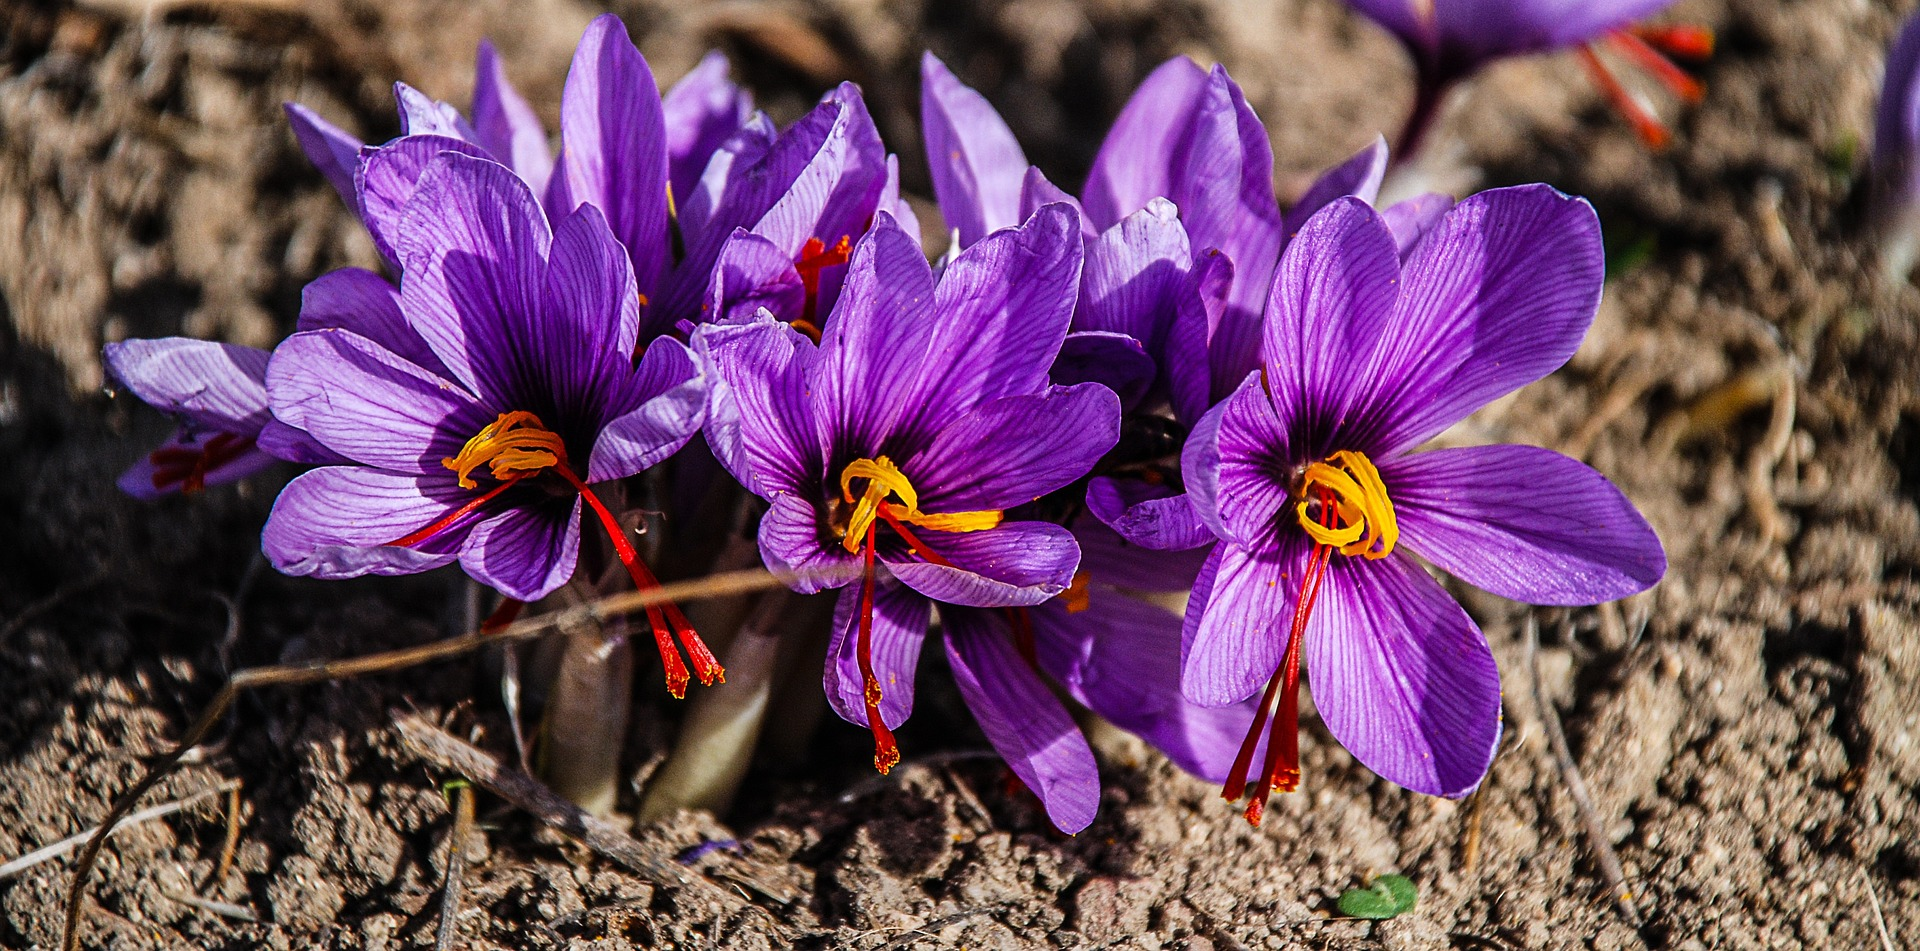 the production of Saffron